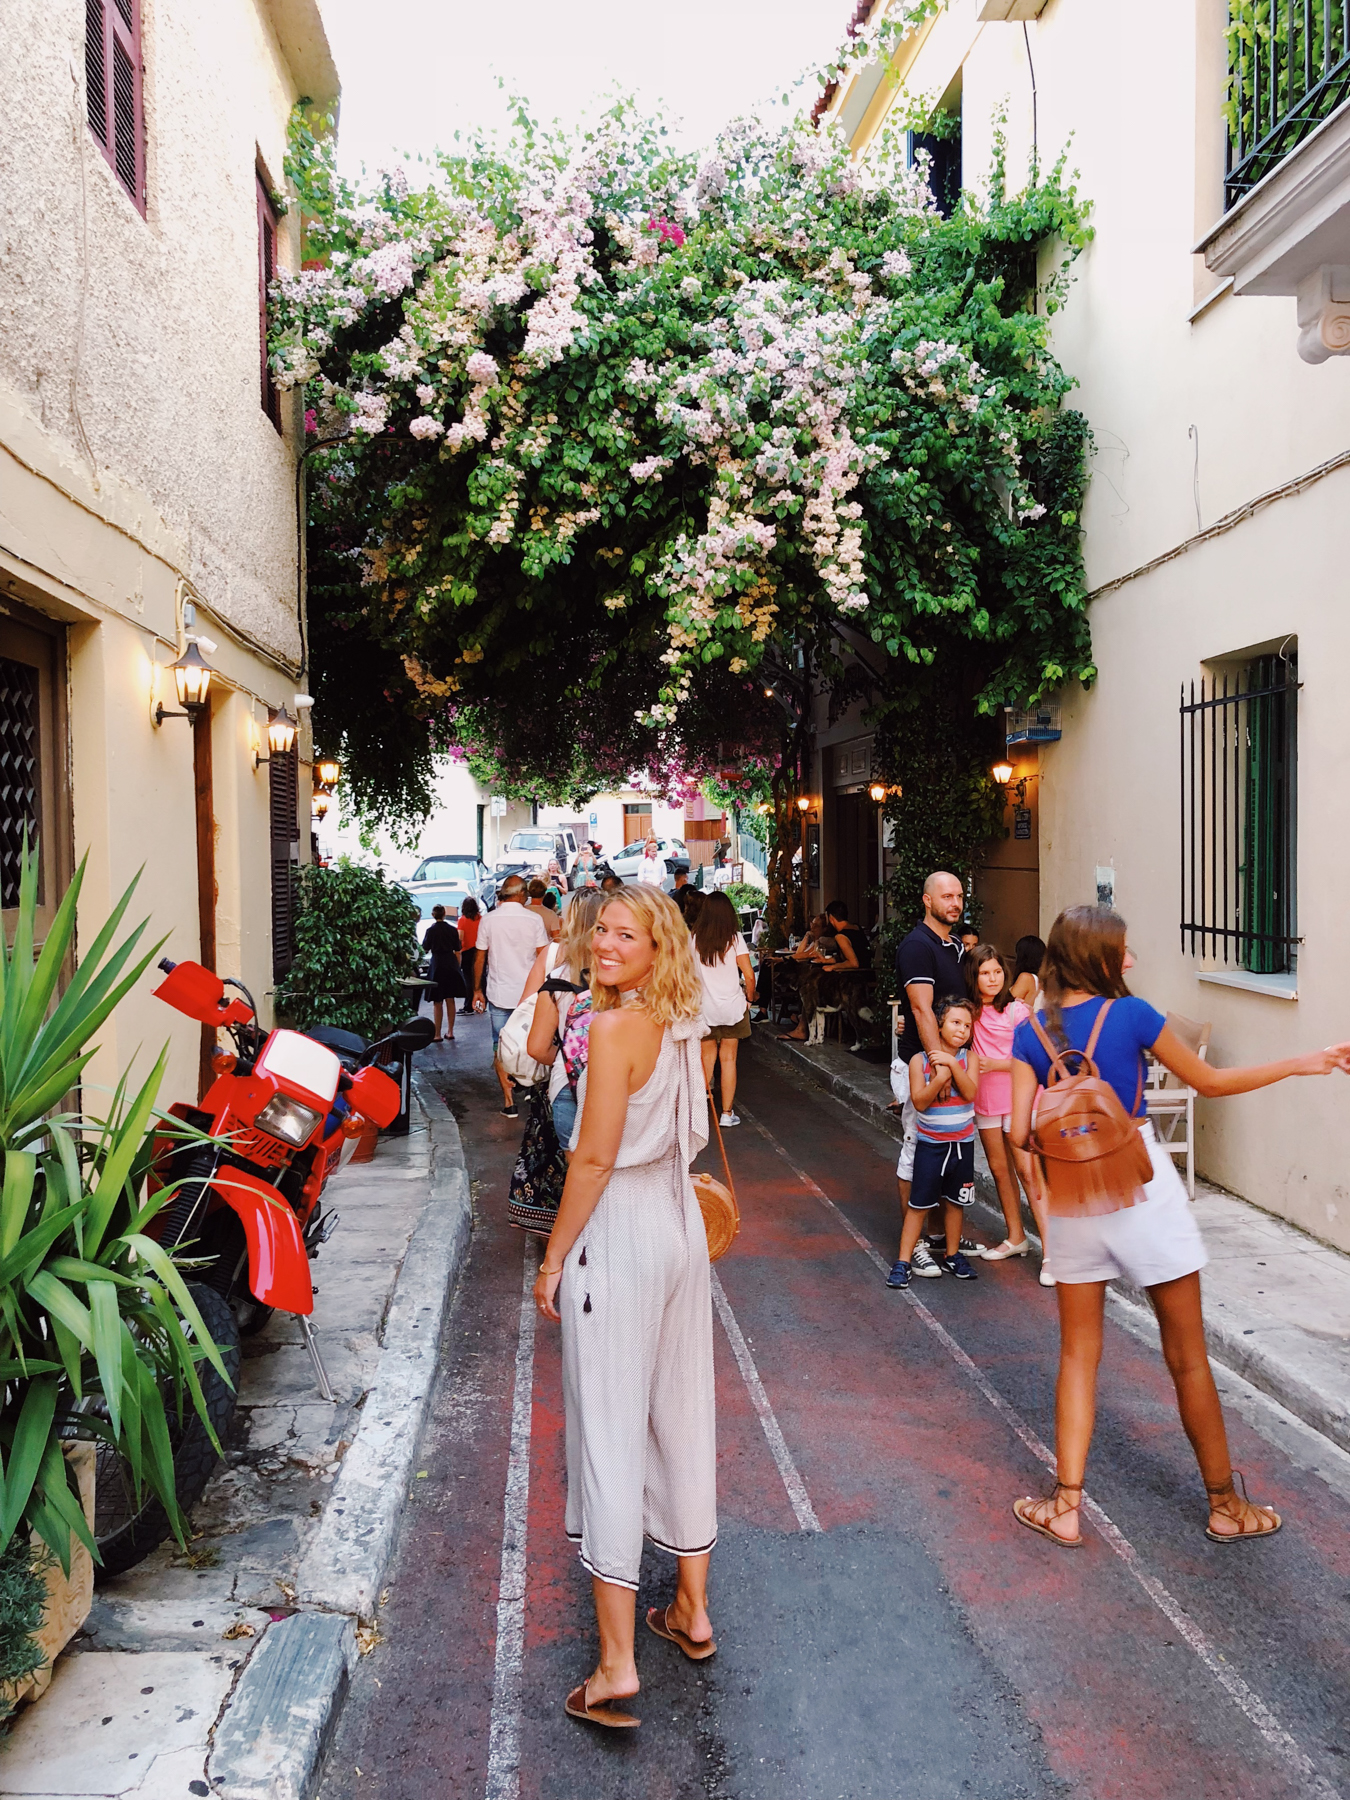 Exploring the Plaka neighborhood in Athens